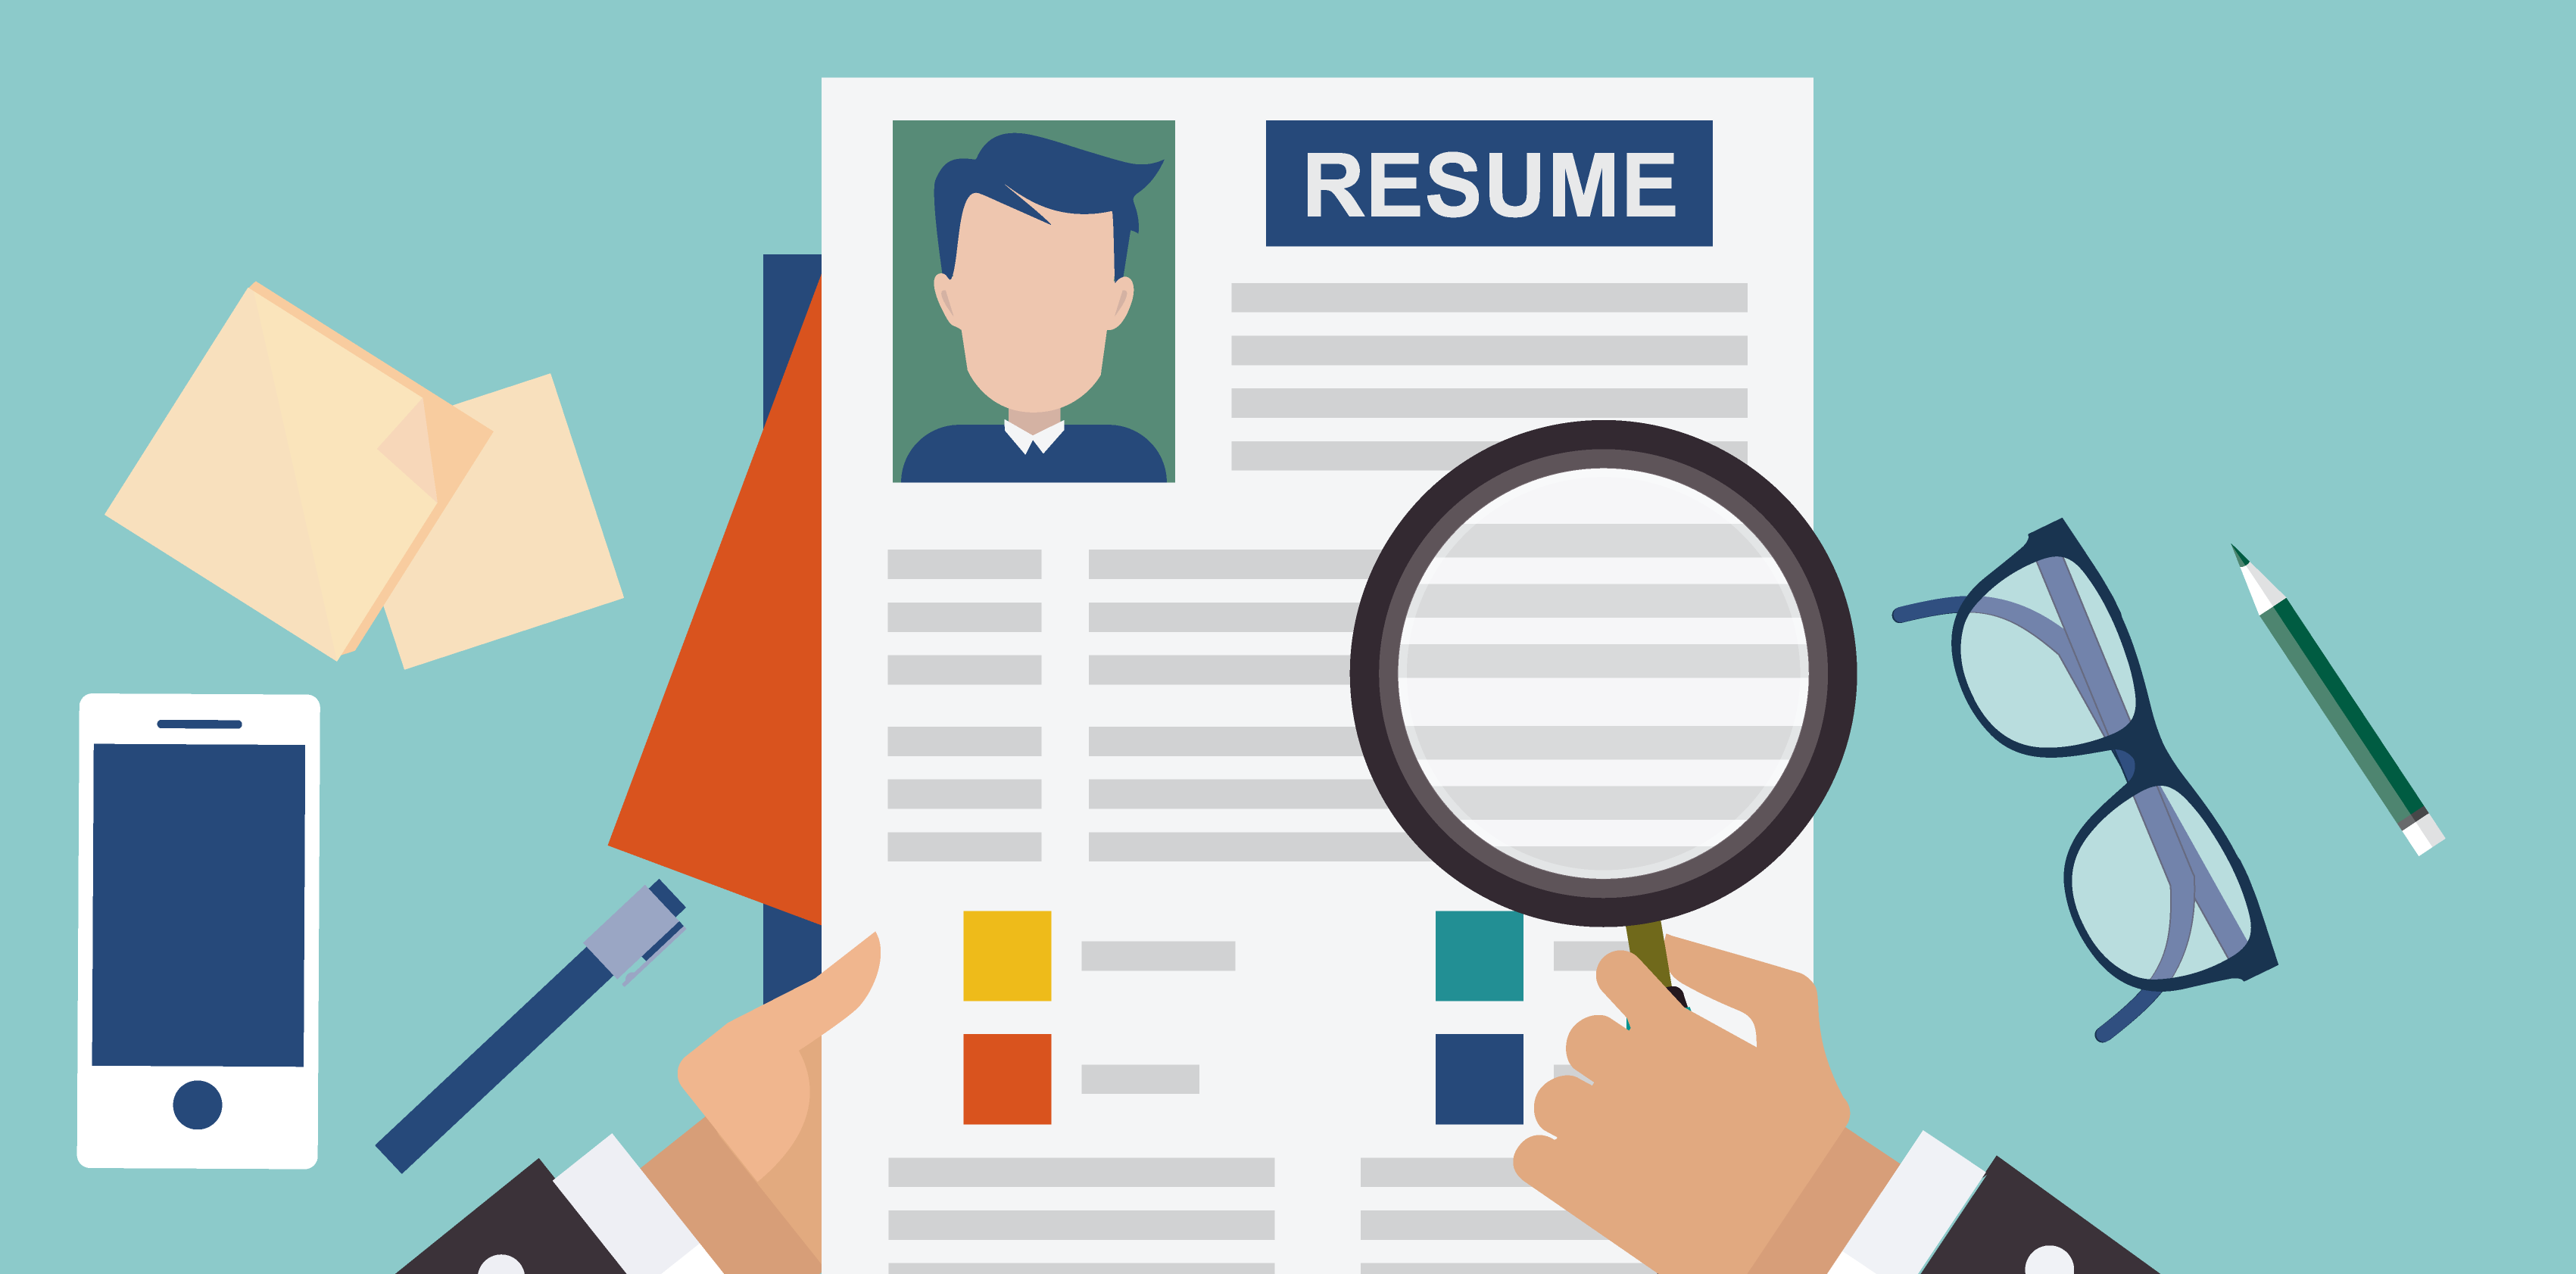 5 Tips on How to Write a Resume – Show, Don't Tell